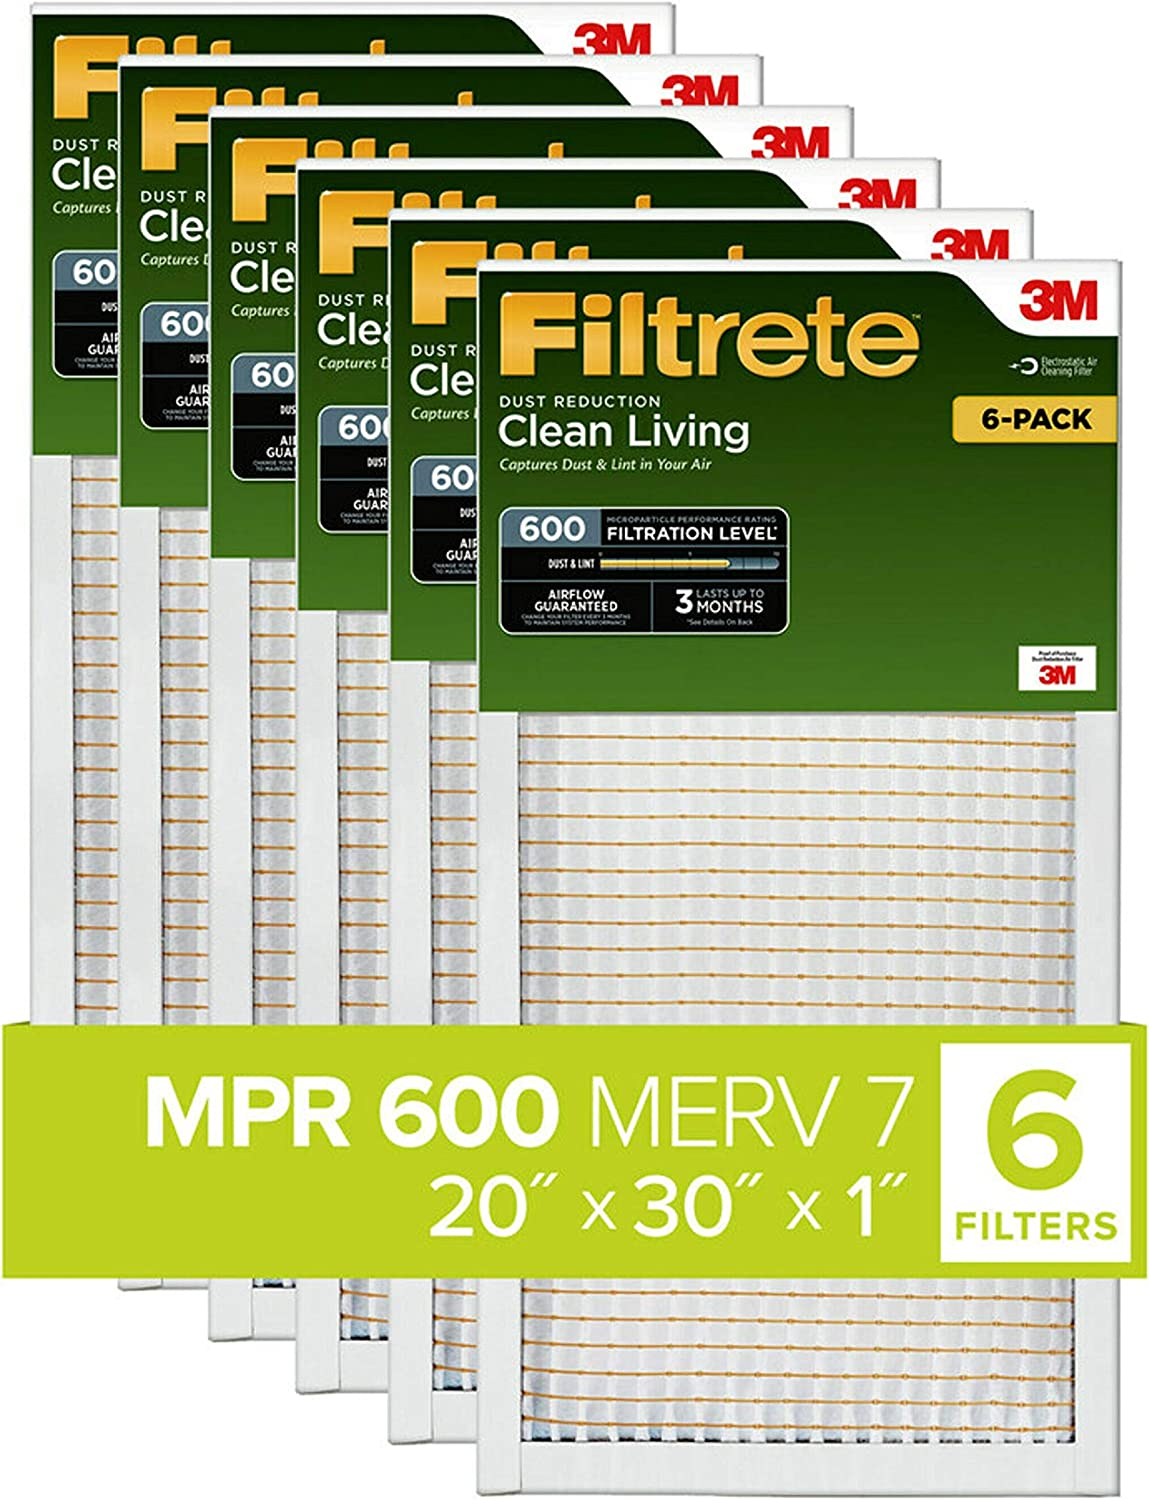 Filtrete 20x30x1, AC Furnace Air Filter, MPR 600, Clean Living Dust Reduction, 6-Pack (exact dimensions 19.81 x 29.81 x 0.81)